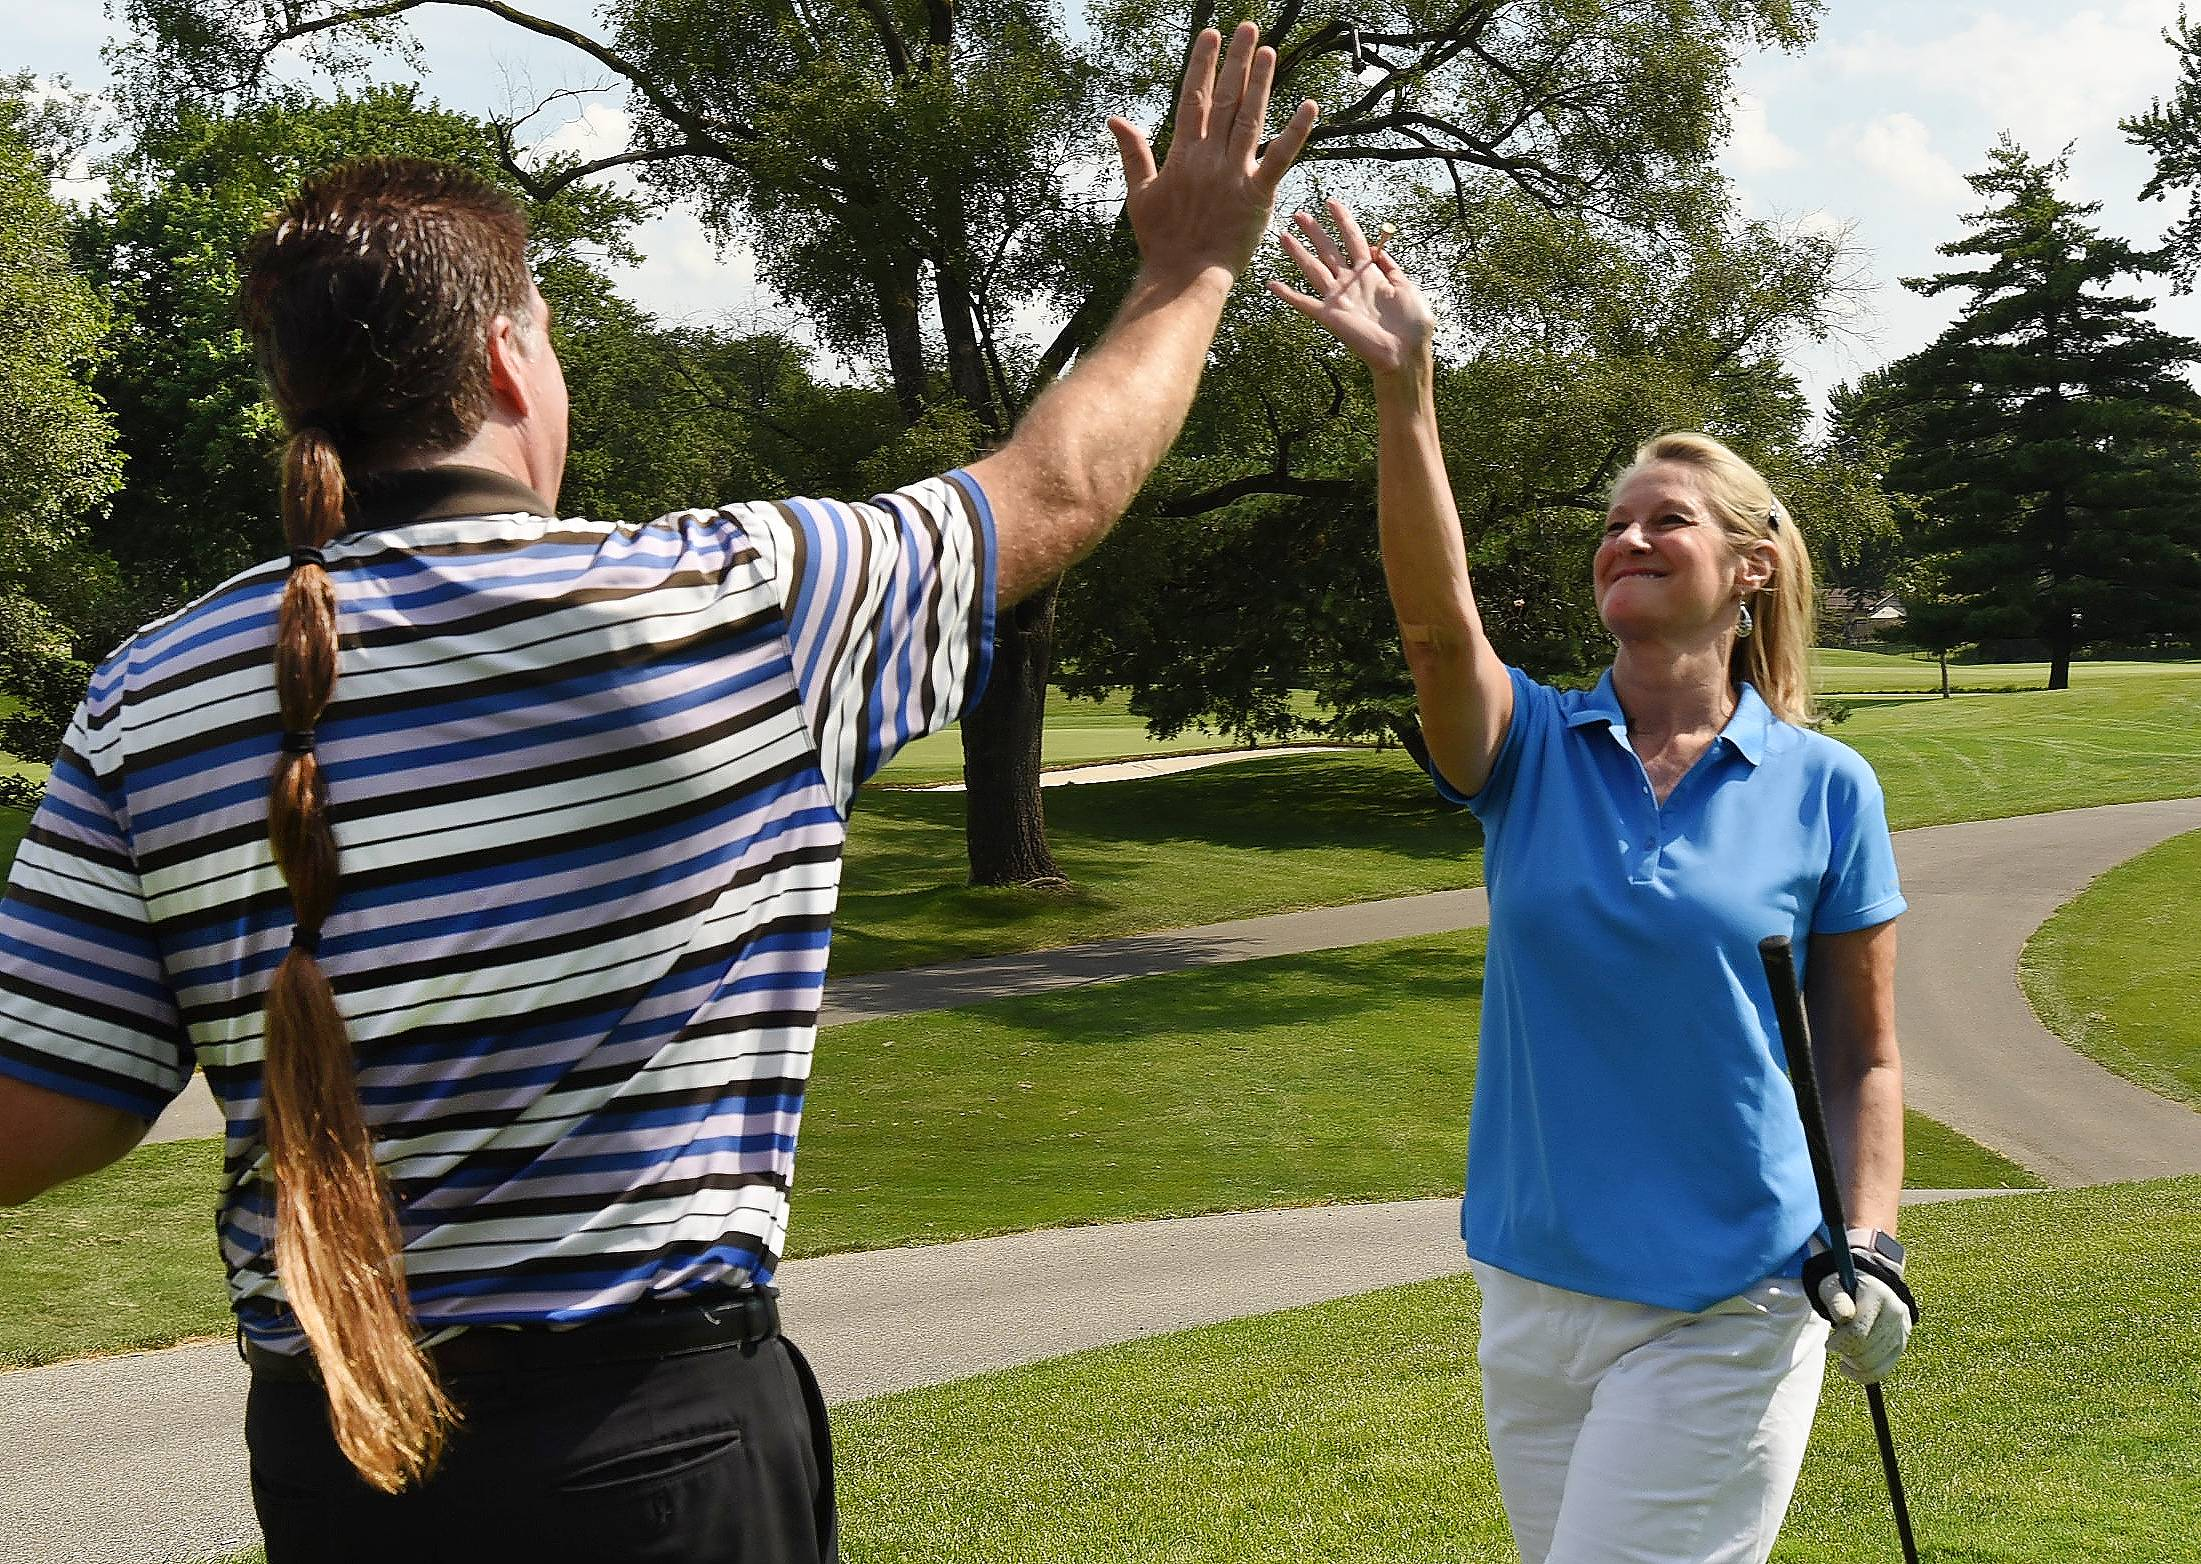 David Thorburn of Schaumburg congratulates Kathy Thomas of Chicago on her opening tee shot Wednesday at the 10th Annual Links Technology Cup golf outing benefiting the Schaumburg Park Foundation.